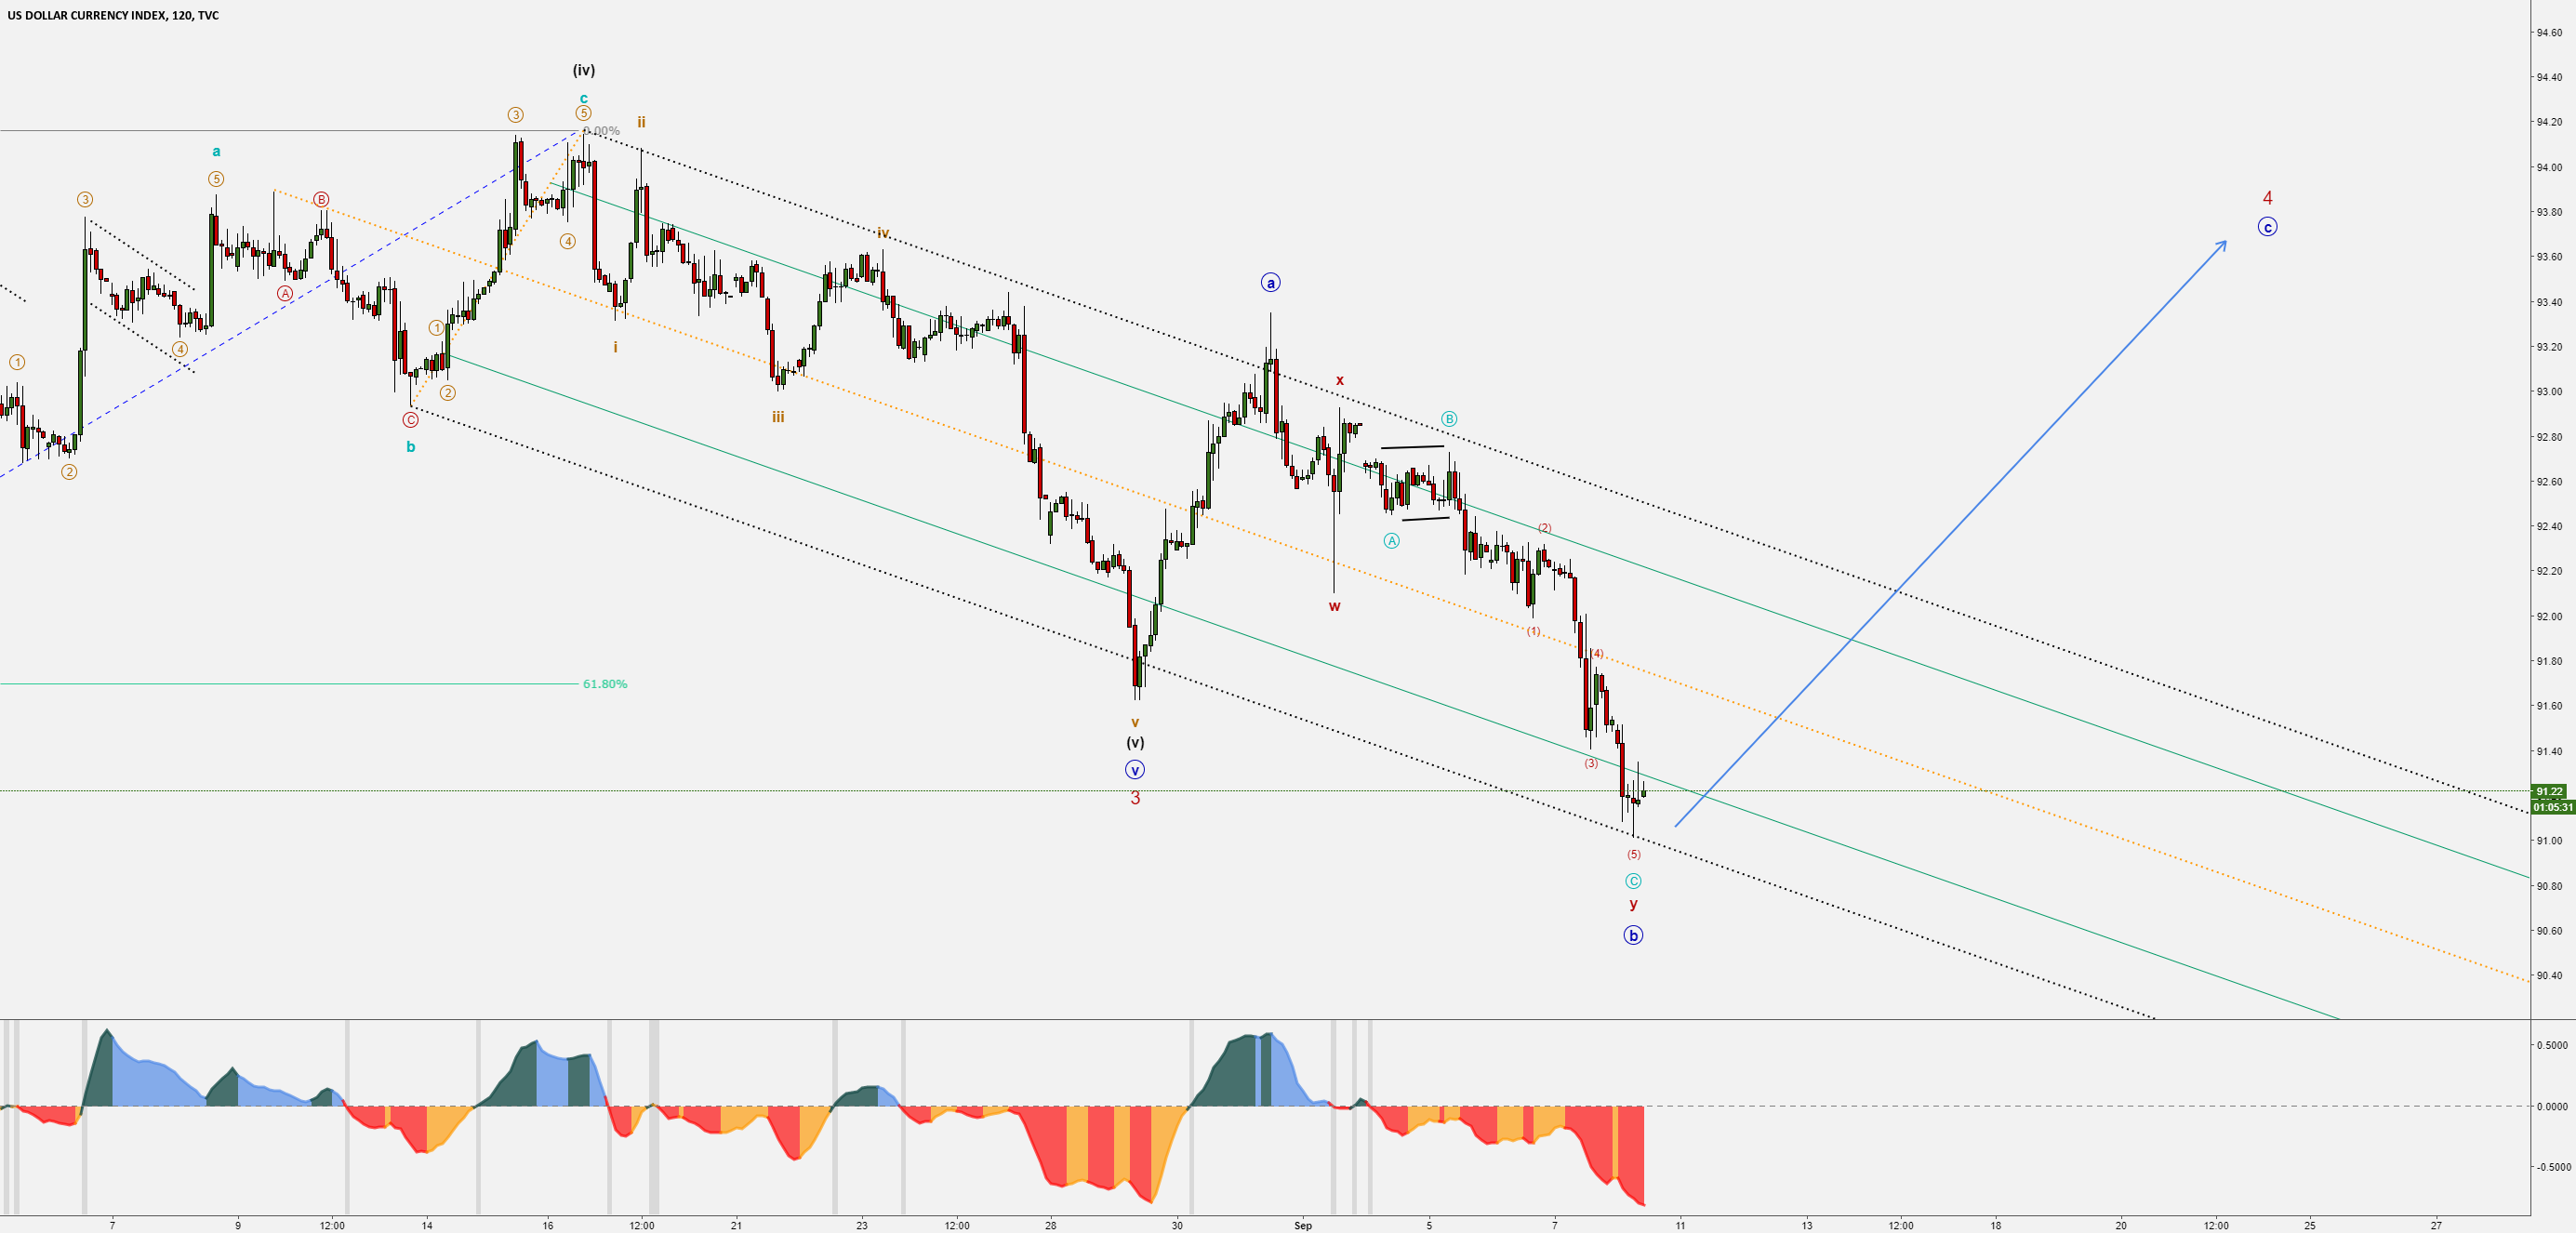 DXY - Fake Break-Out - Bullish Minute IV